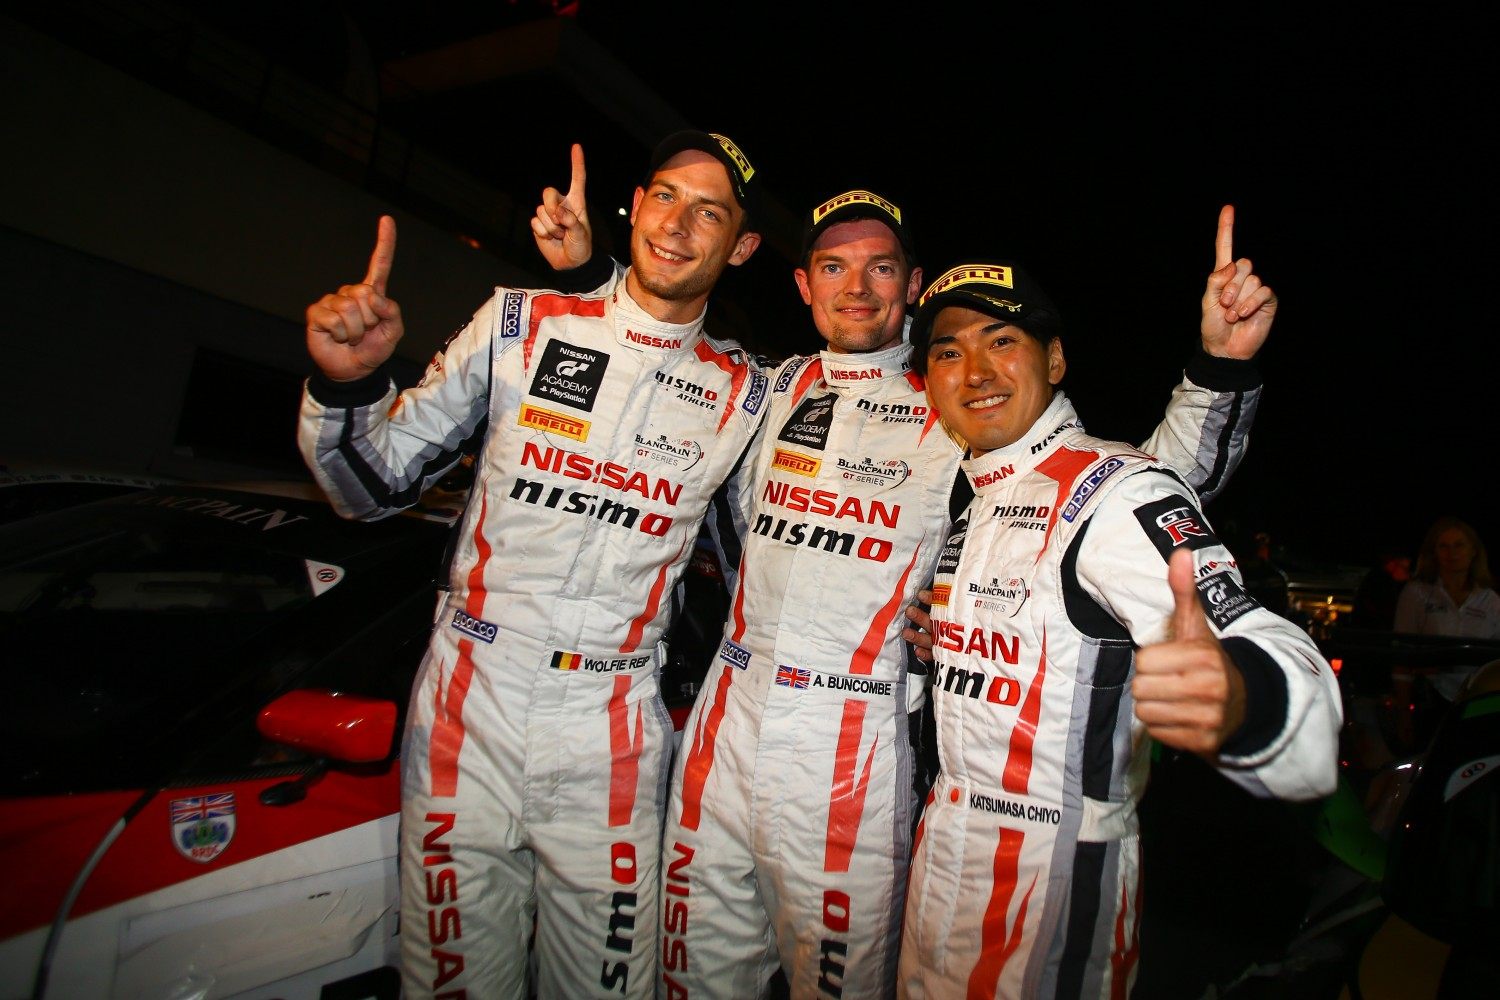 15 highlights of '15: Le Castellet: Nissan wins in the dark